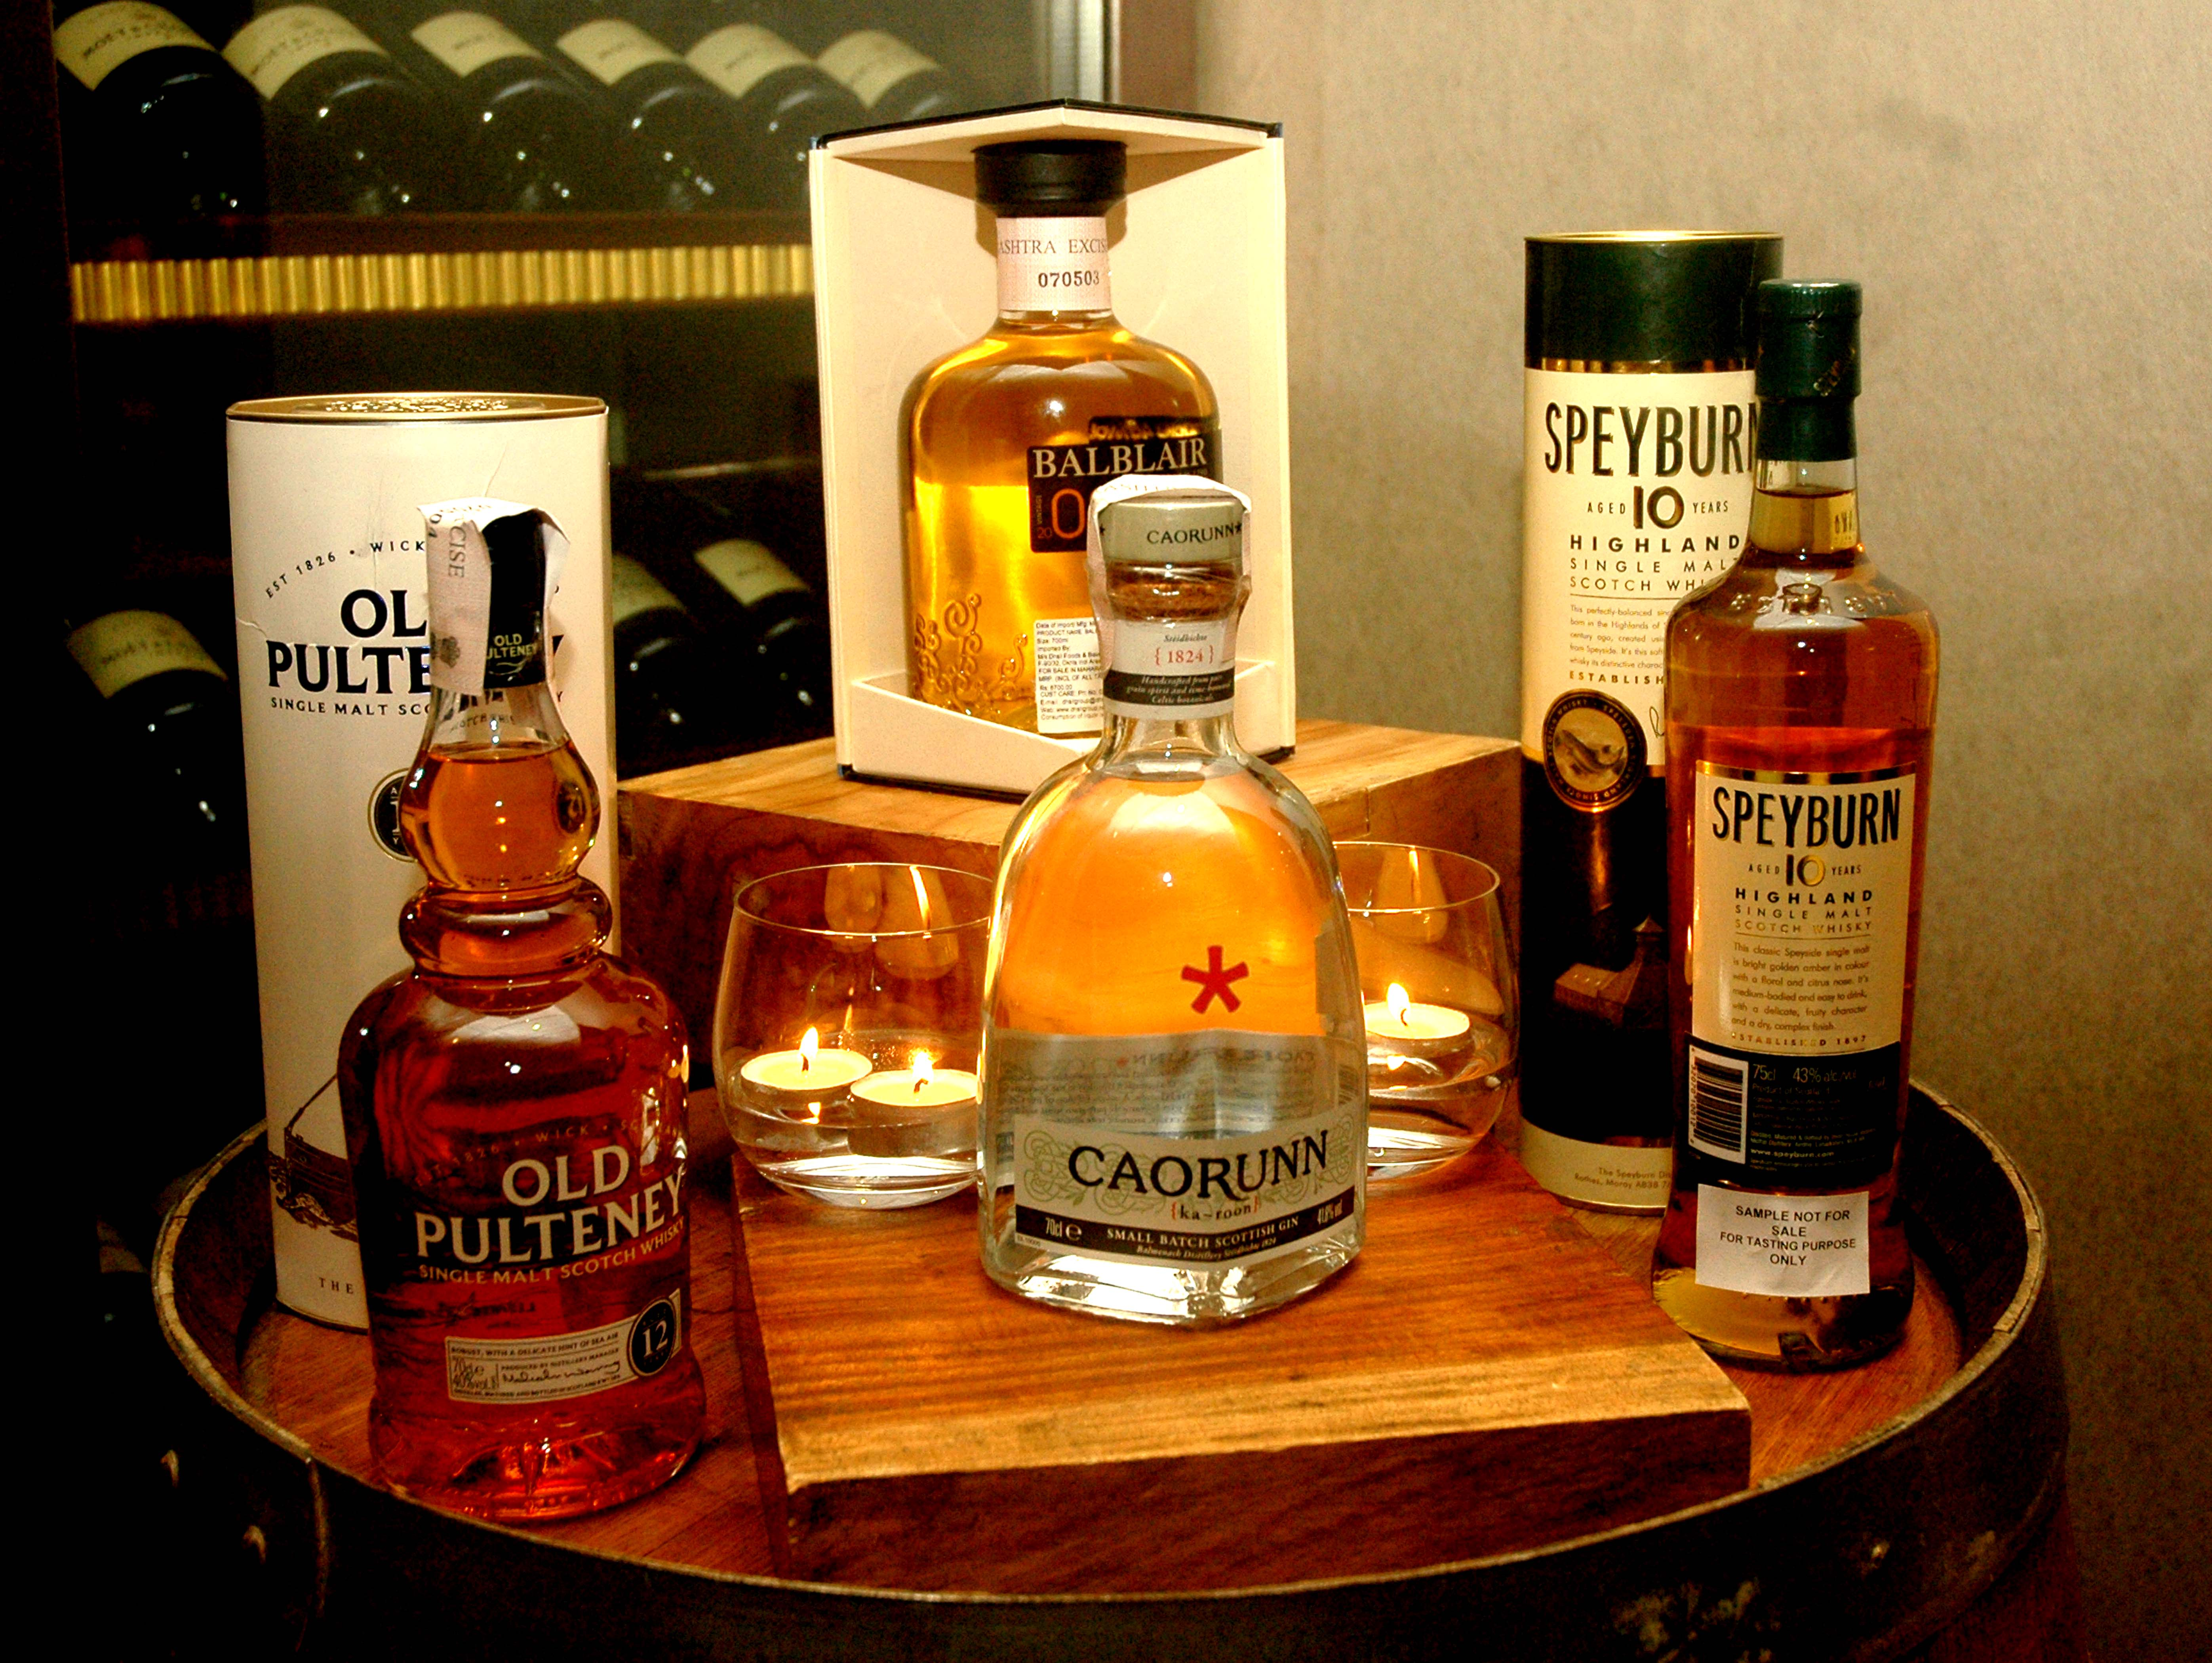 IBHL enters India with Old Pulteney, Caorunn & Balblair Scotch Whisky